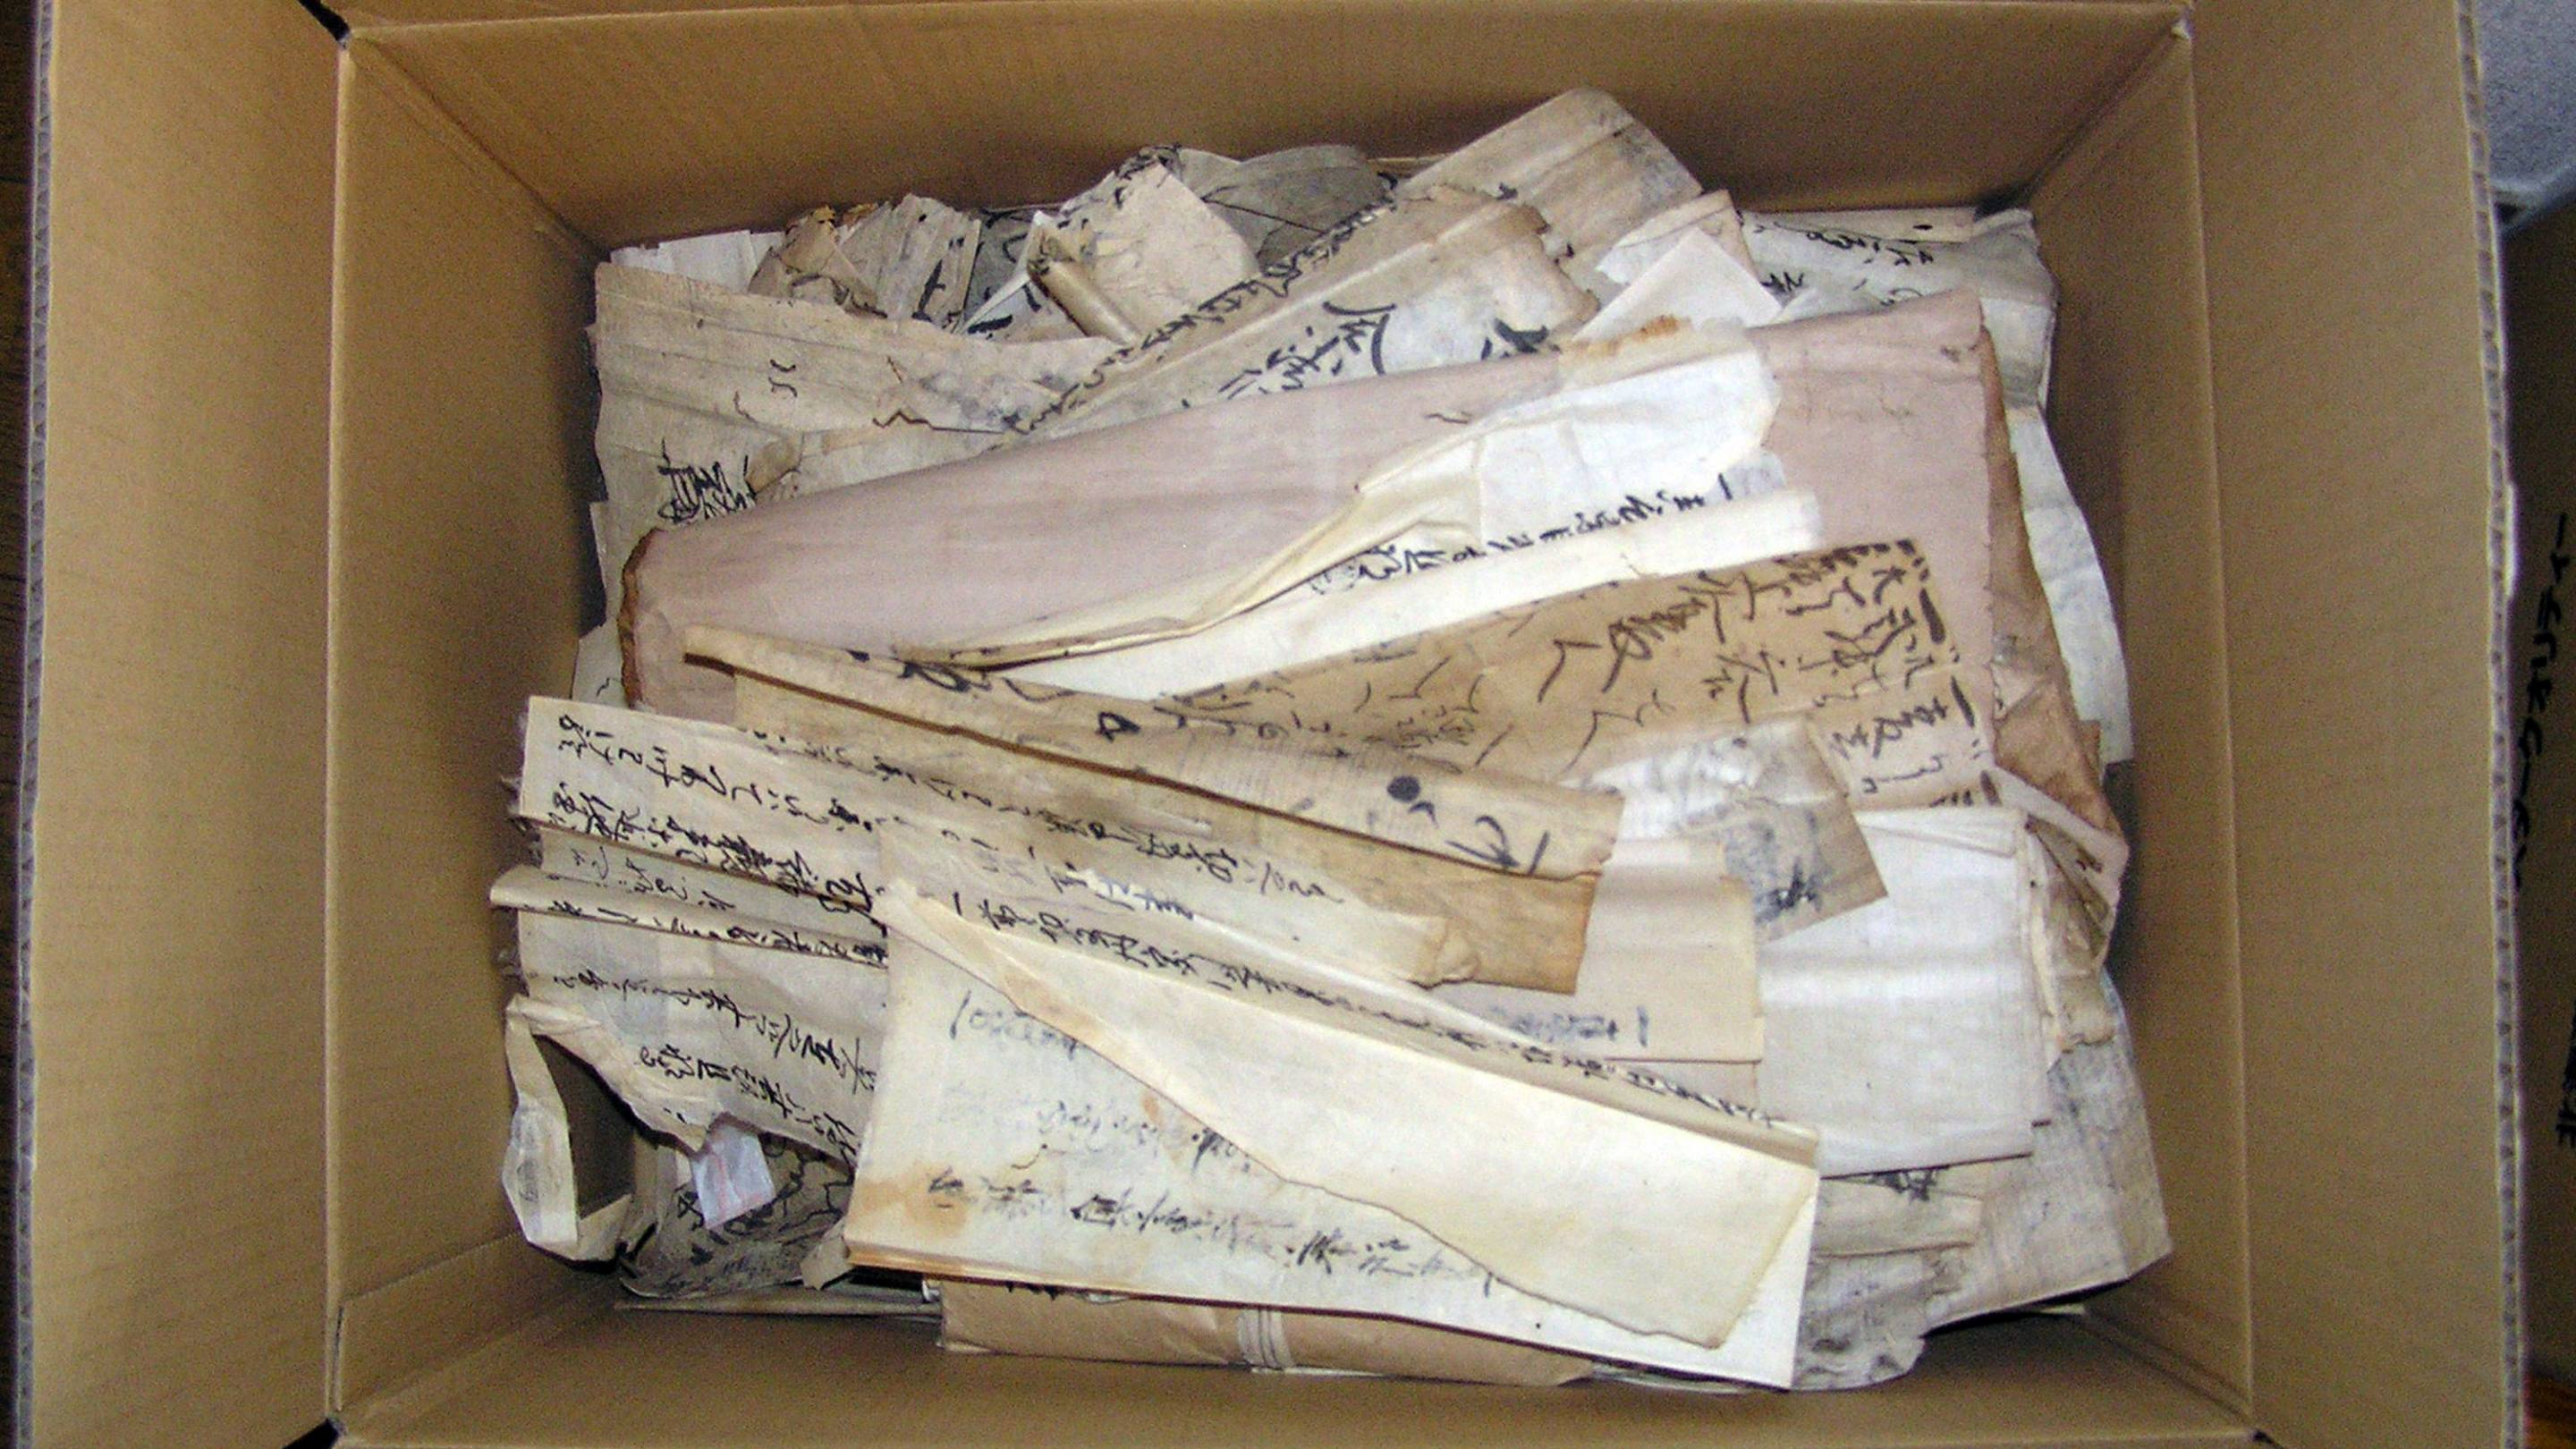 Conlan and Noguchi uncovered rare Japanese medieval documents from Sakuramotobō. Pictured are the documents upon arrival to Princeton. Photo by Setsuko Noguchi, Princeton University Library (PUL)